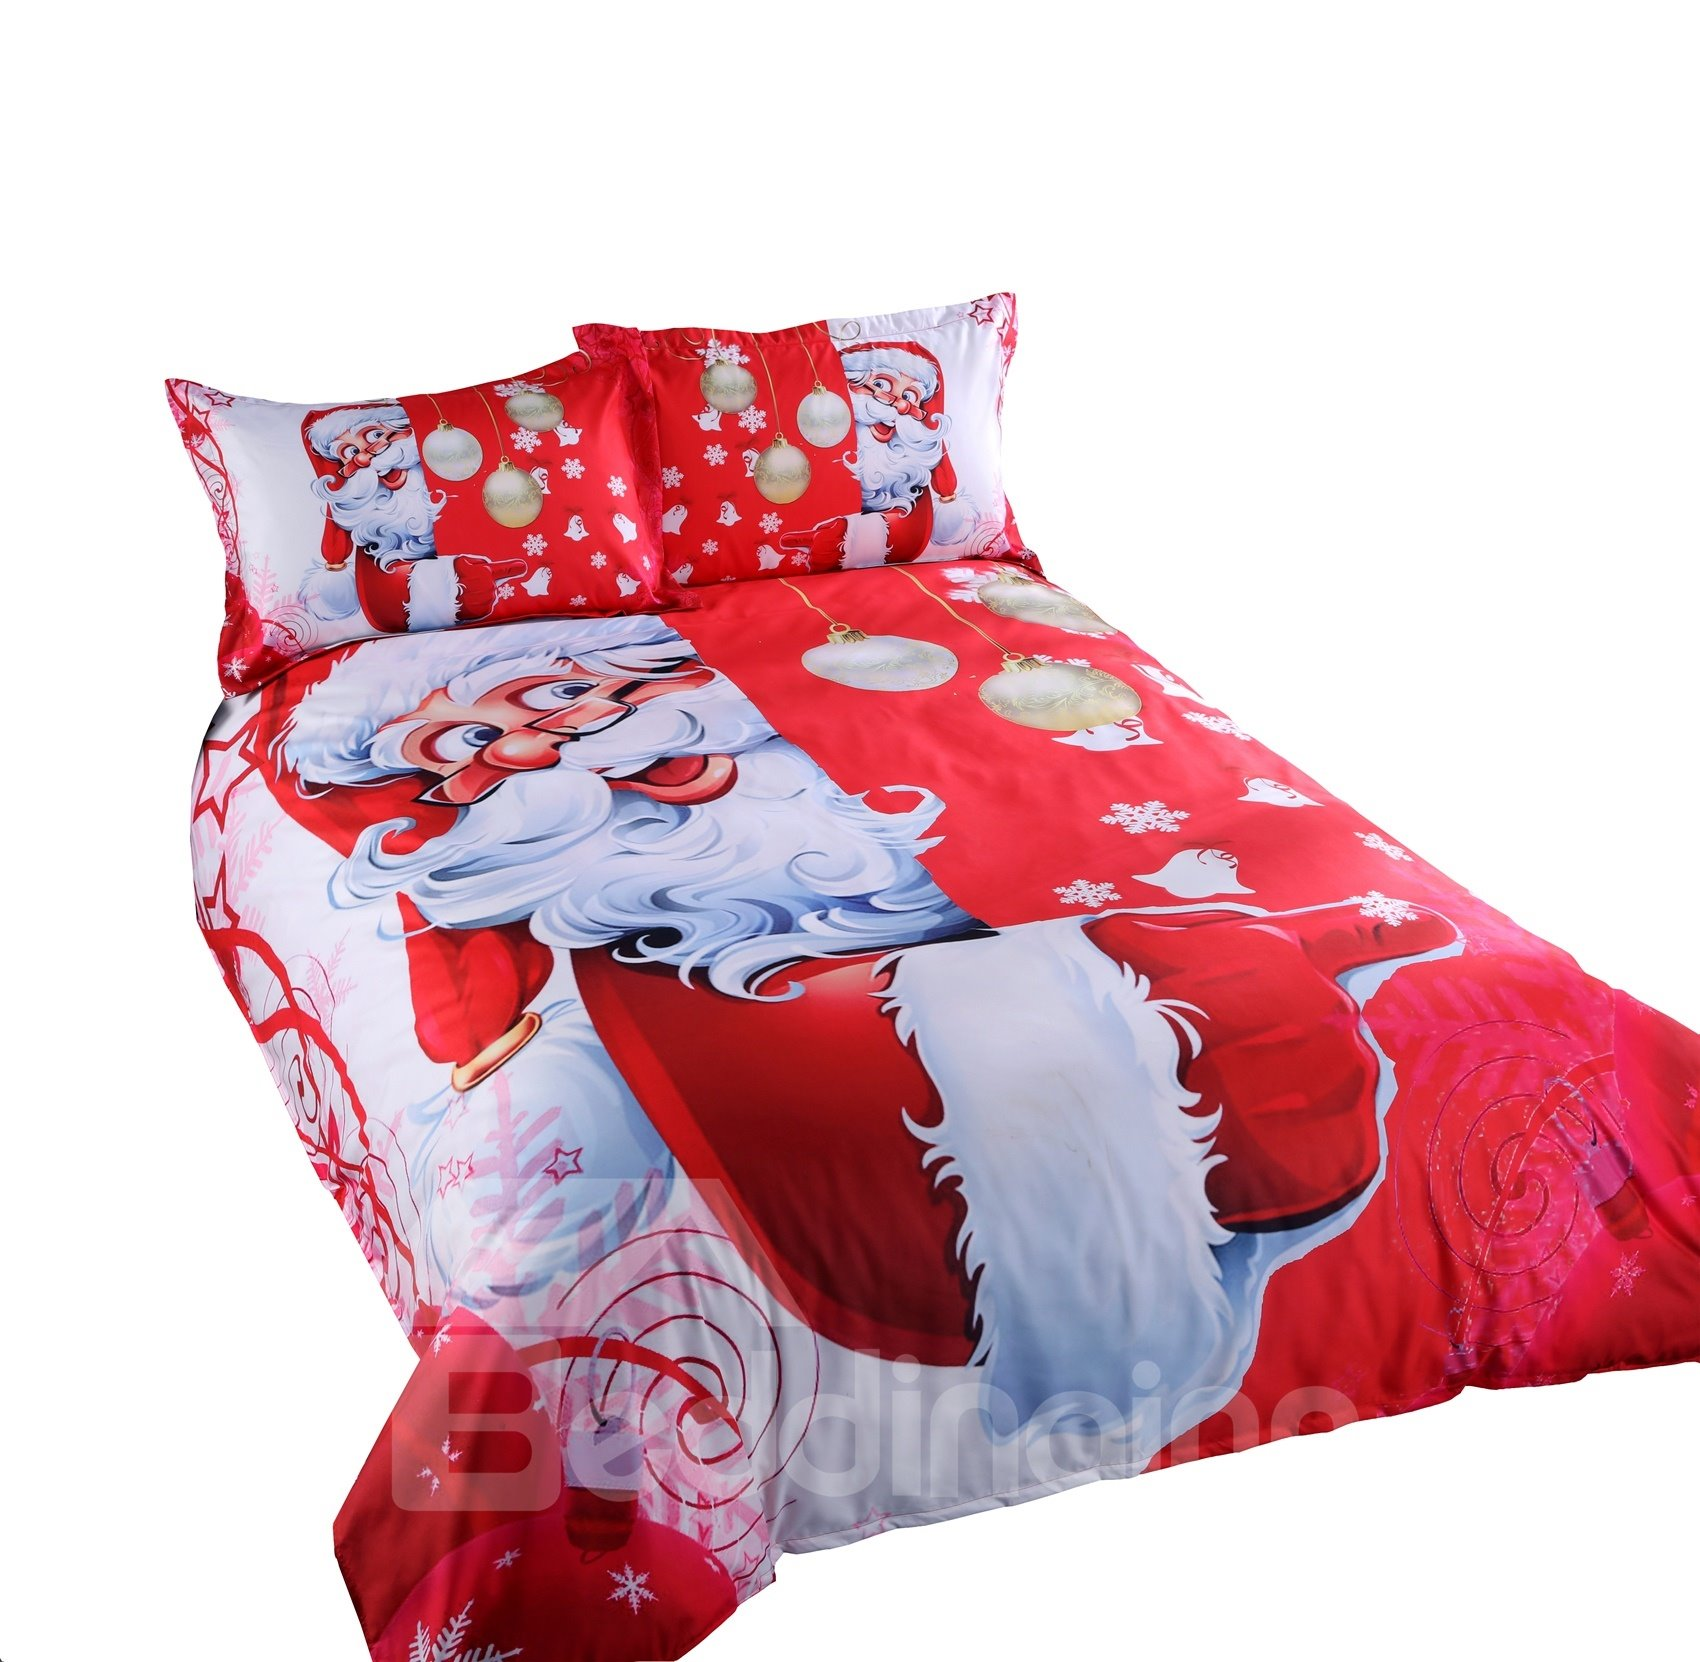 3D Santa and Christmas Decorations Printed Cotton 4-Piece Red Bedding Sets/Duvet Covers